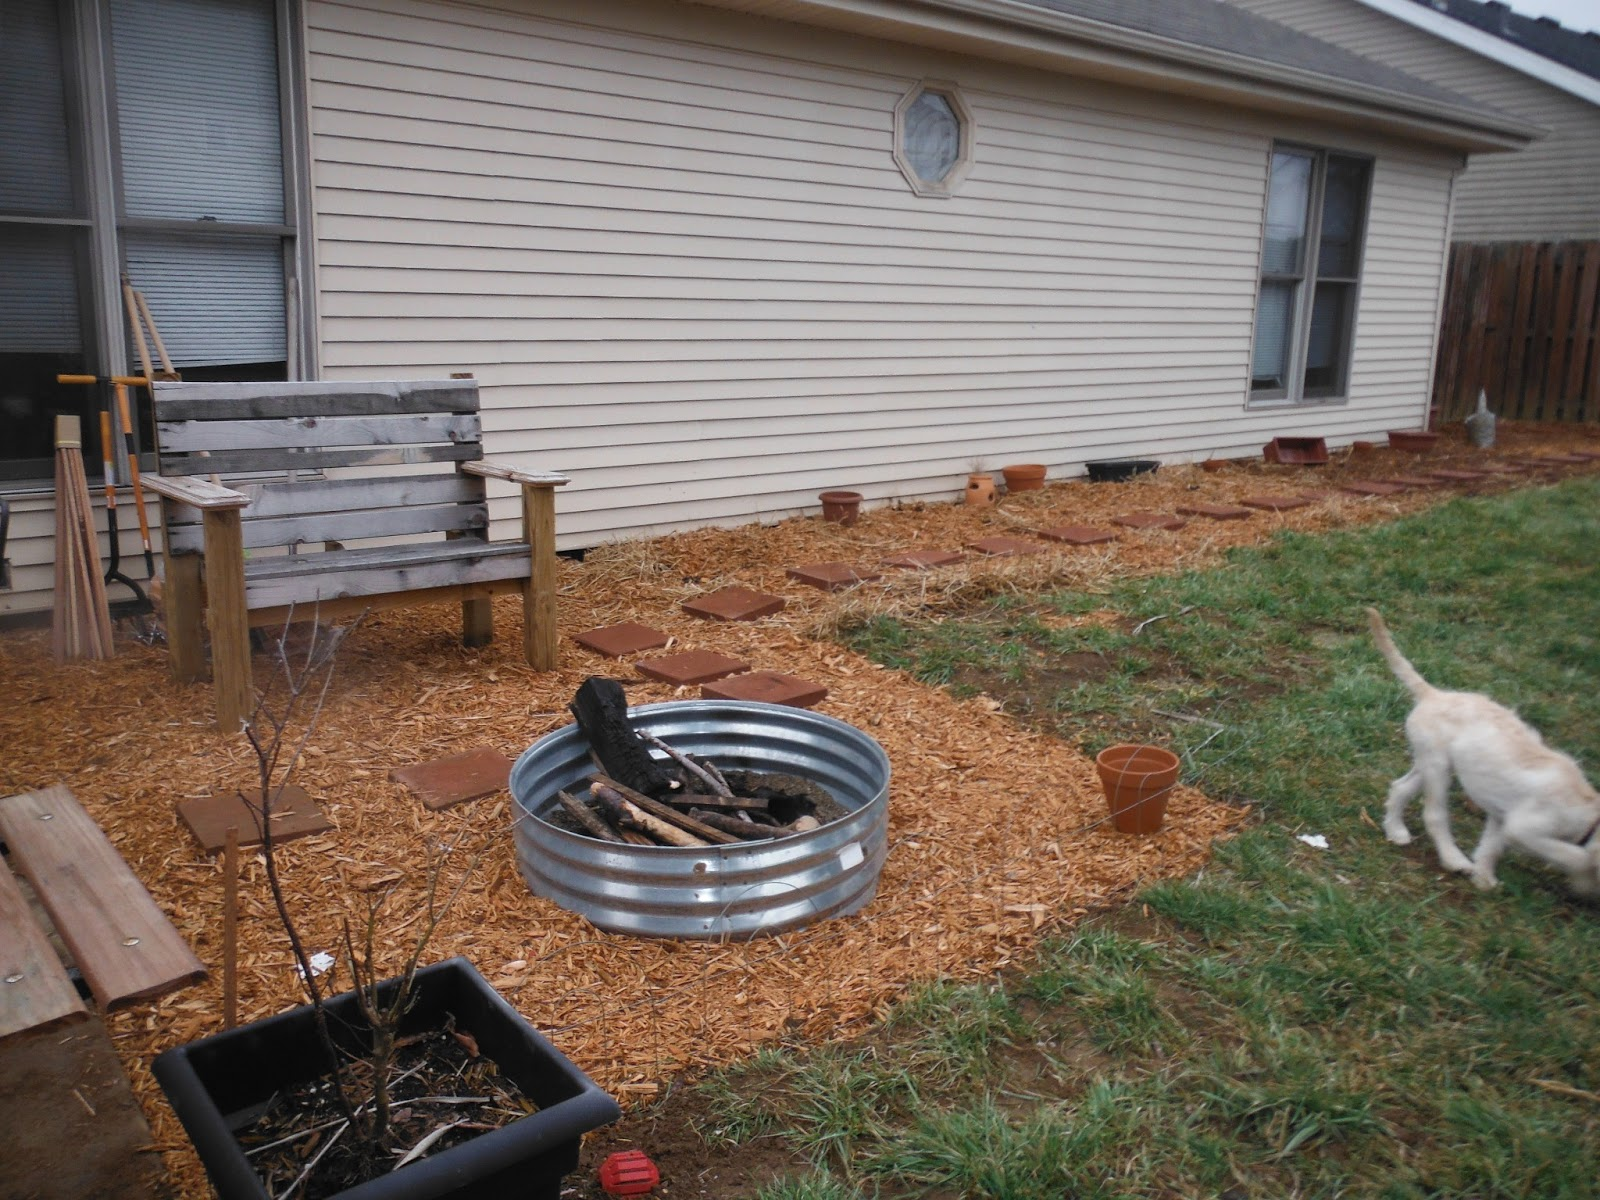 Suburban Backyard Farming : Suburban Backyard Farm Turning our yard into a Farm